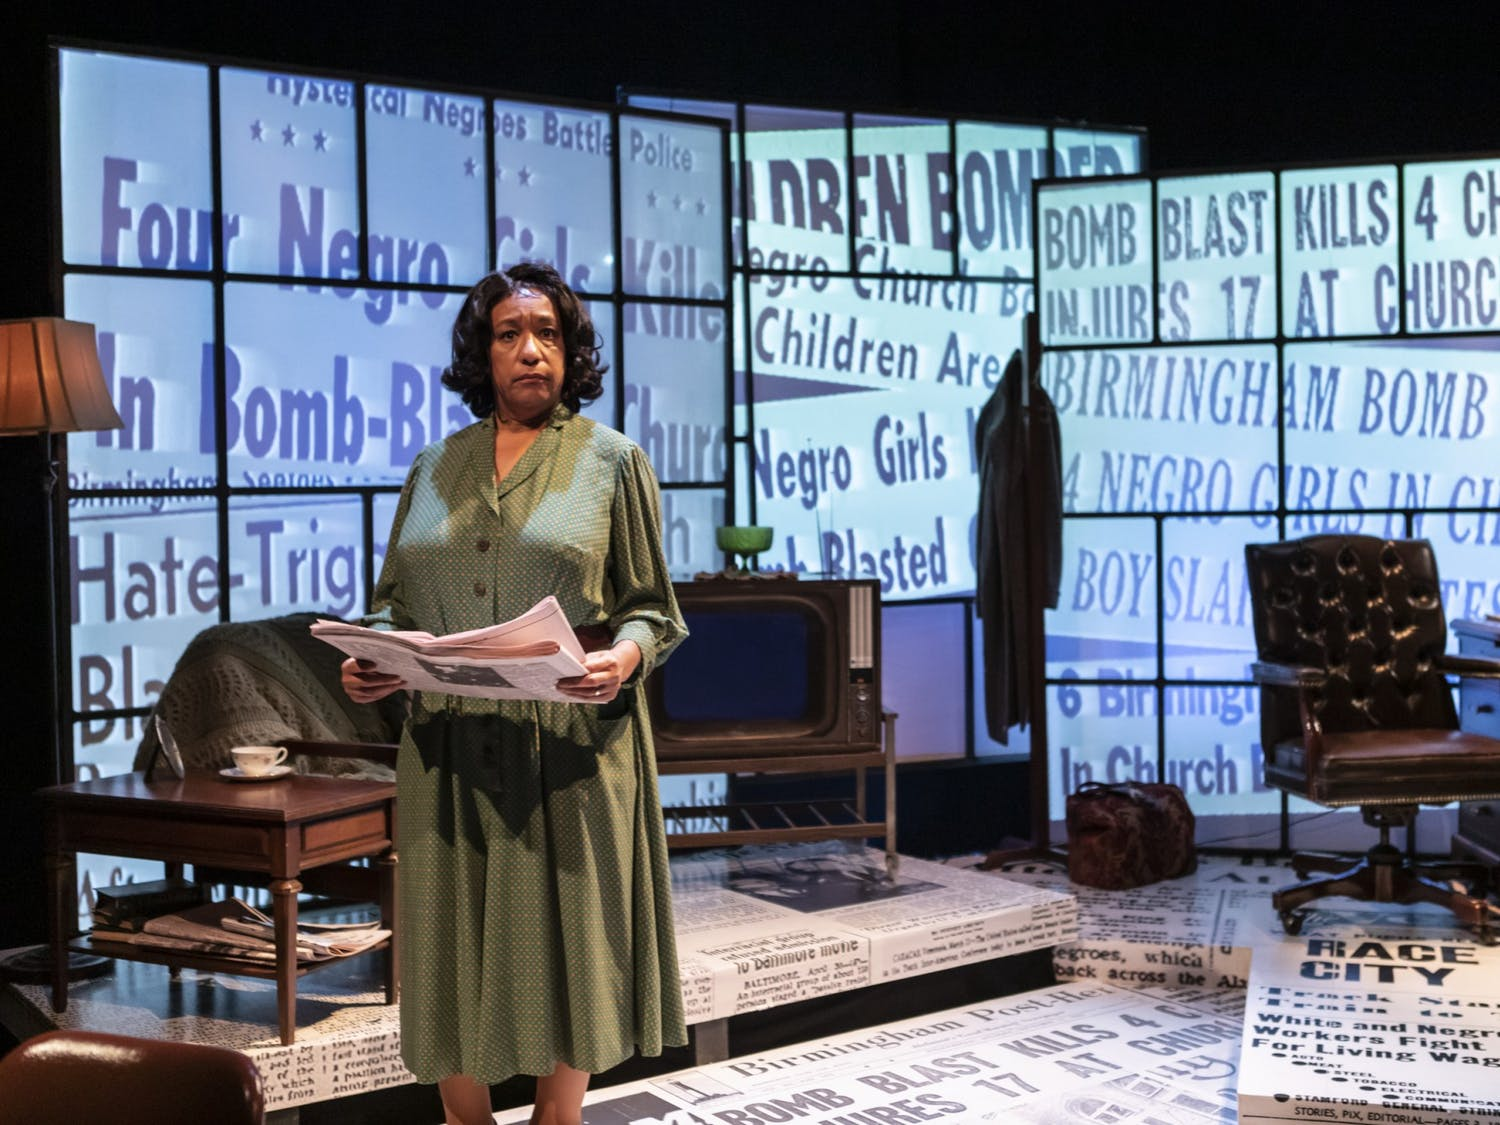 """PlayMakers Repertory Company is hosting Jacqueline E. Lawton's recent play, """"Edges of Time,"""" which shows the life of Marvel Cooke, the first Black woman journalist to have her own byline in a major U.S. newspaper. The one-woman show stars Kathryn Hunter-Williams as Cooke. Photo courtesy of Alex Maness."""